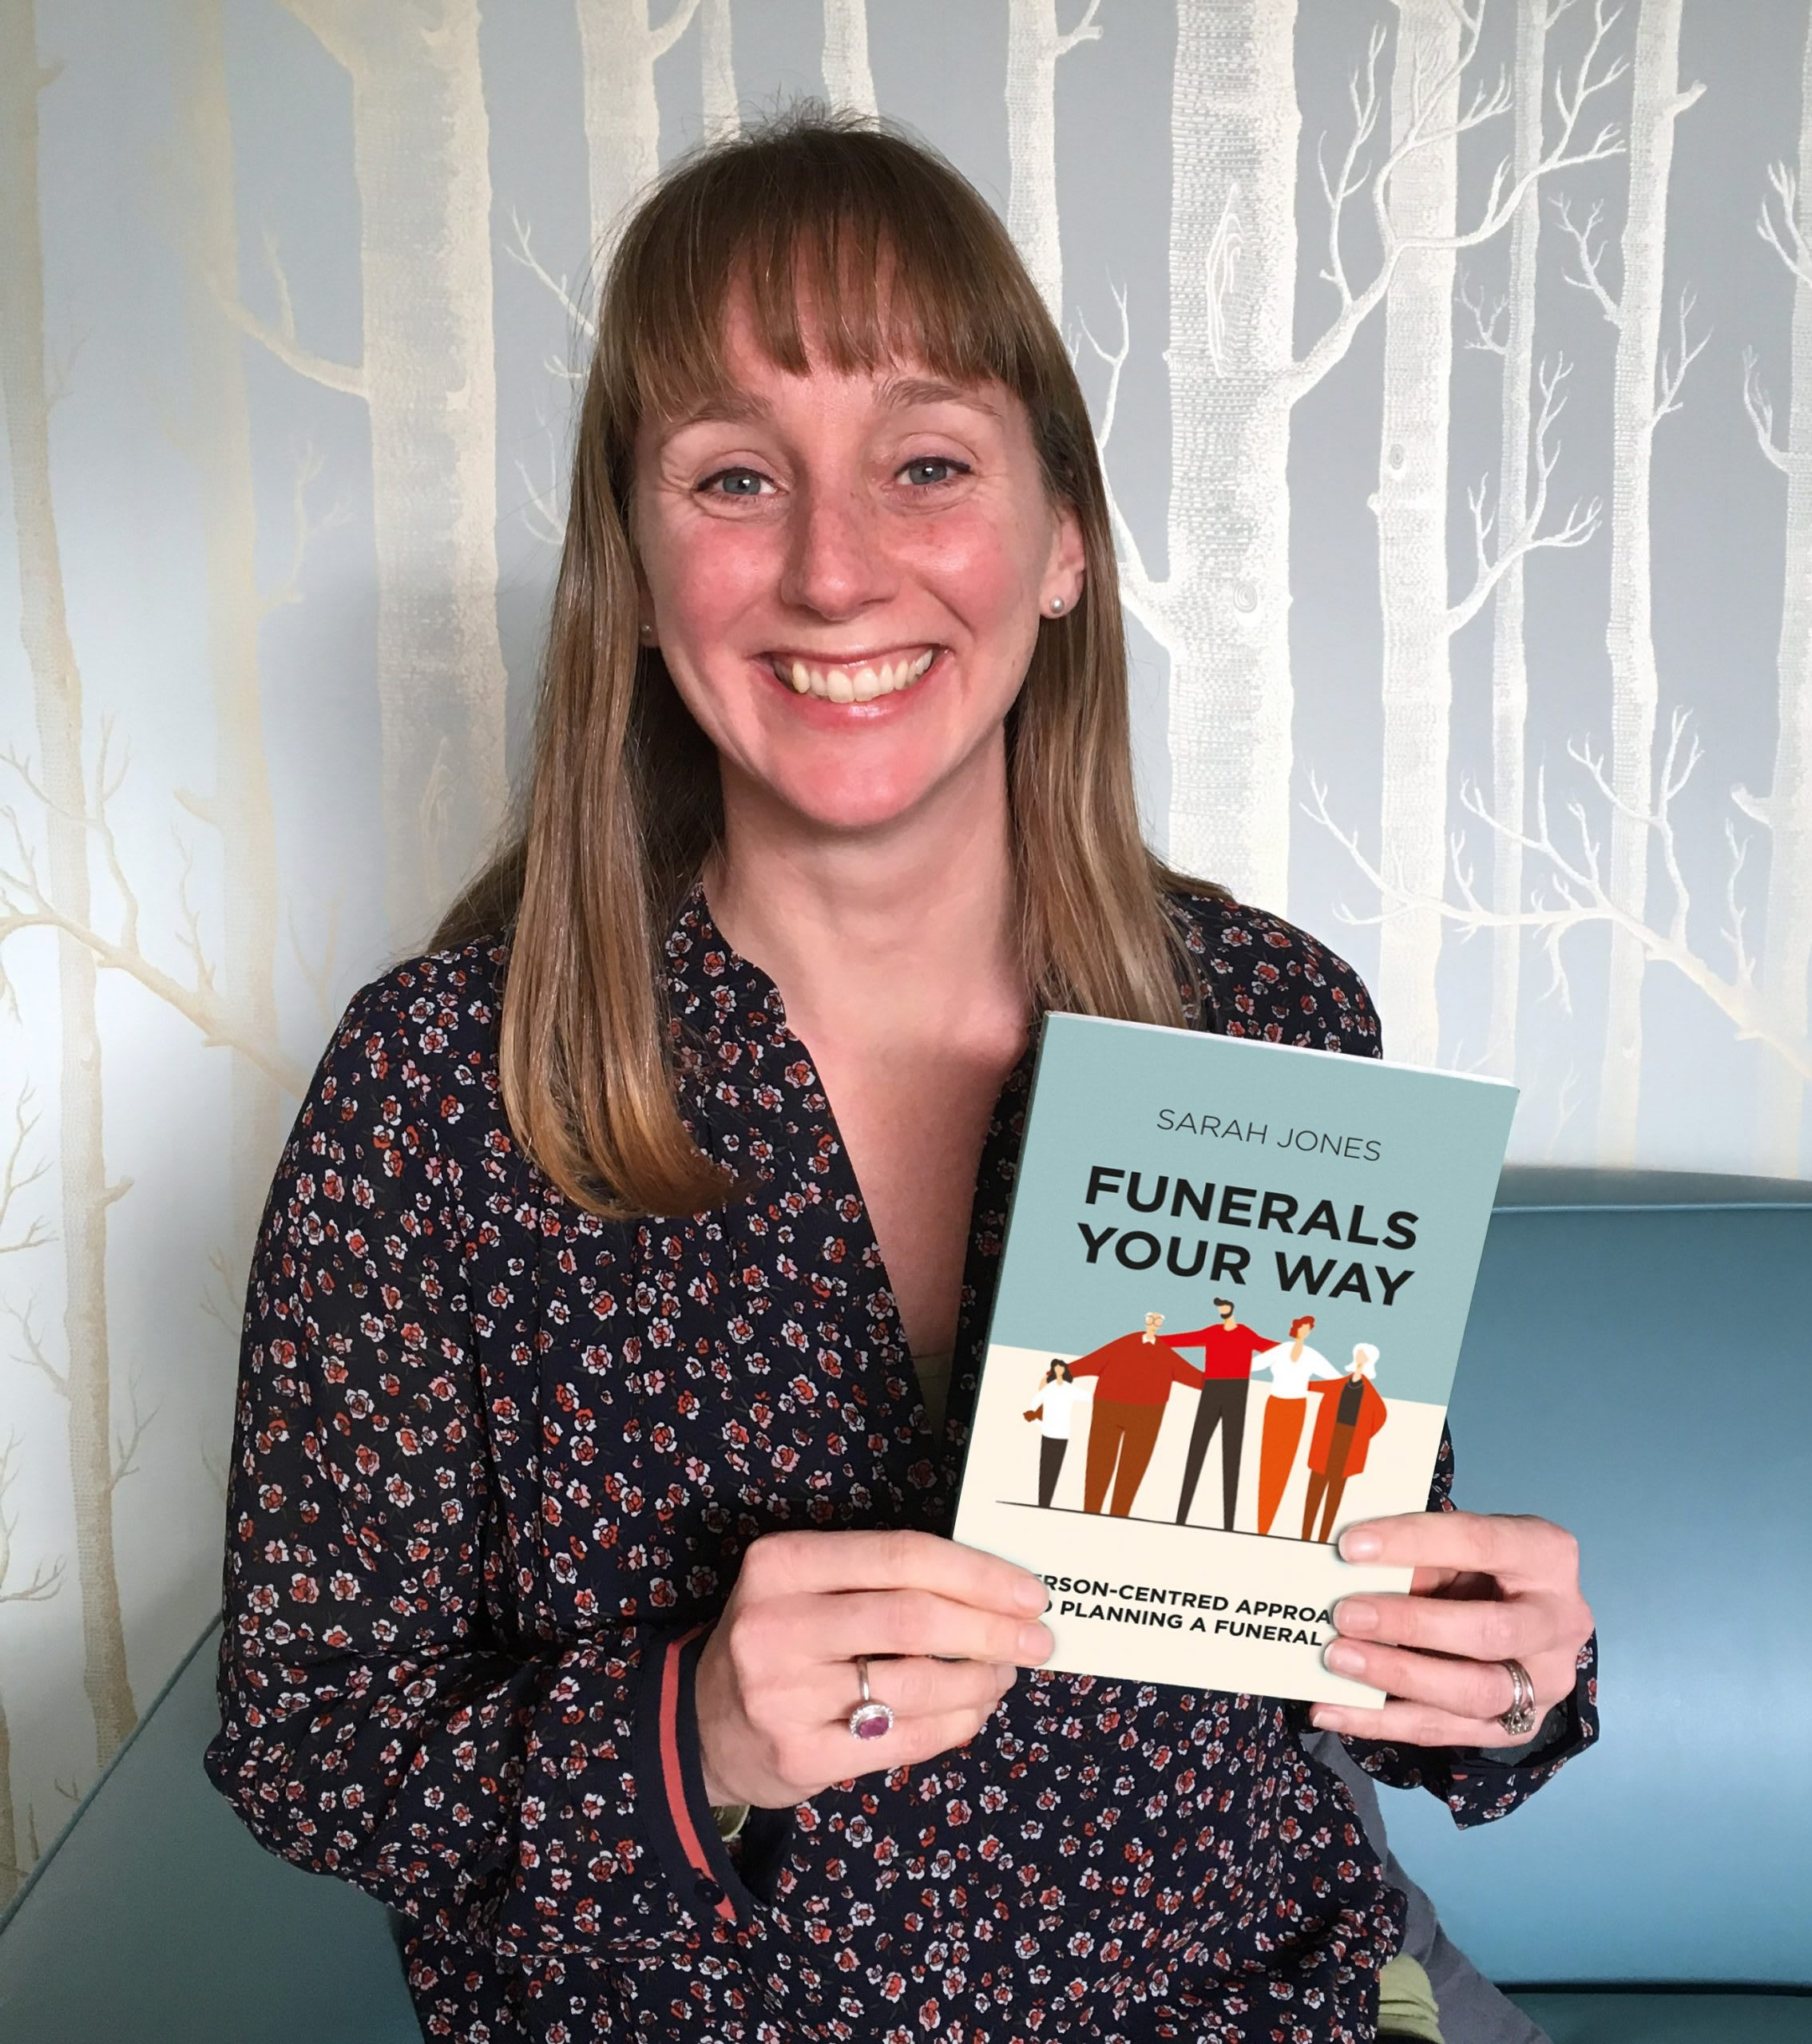 Sarah Jones from Full Circle Funerals holds her book, Funerals, Your Way